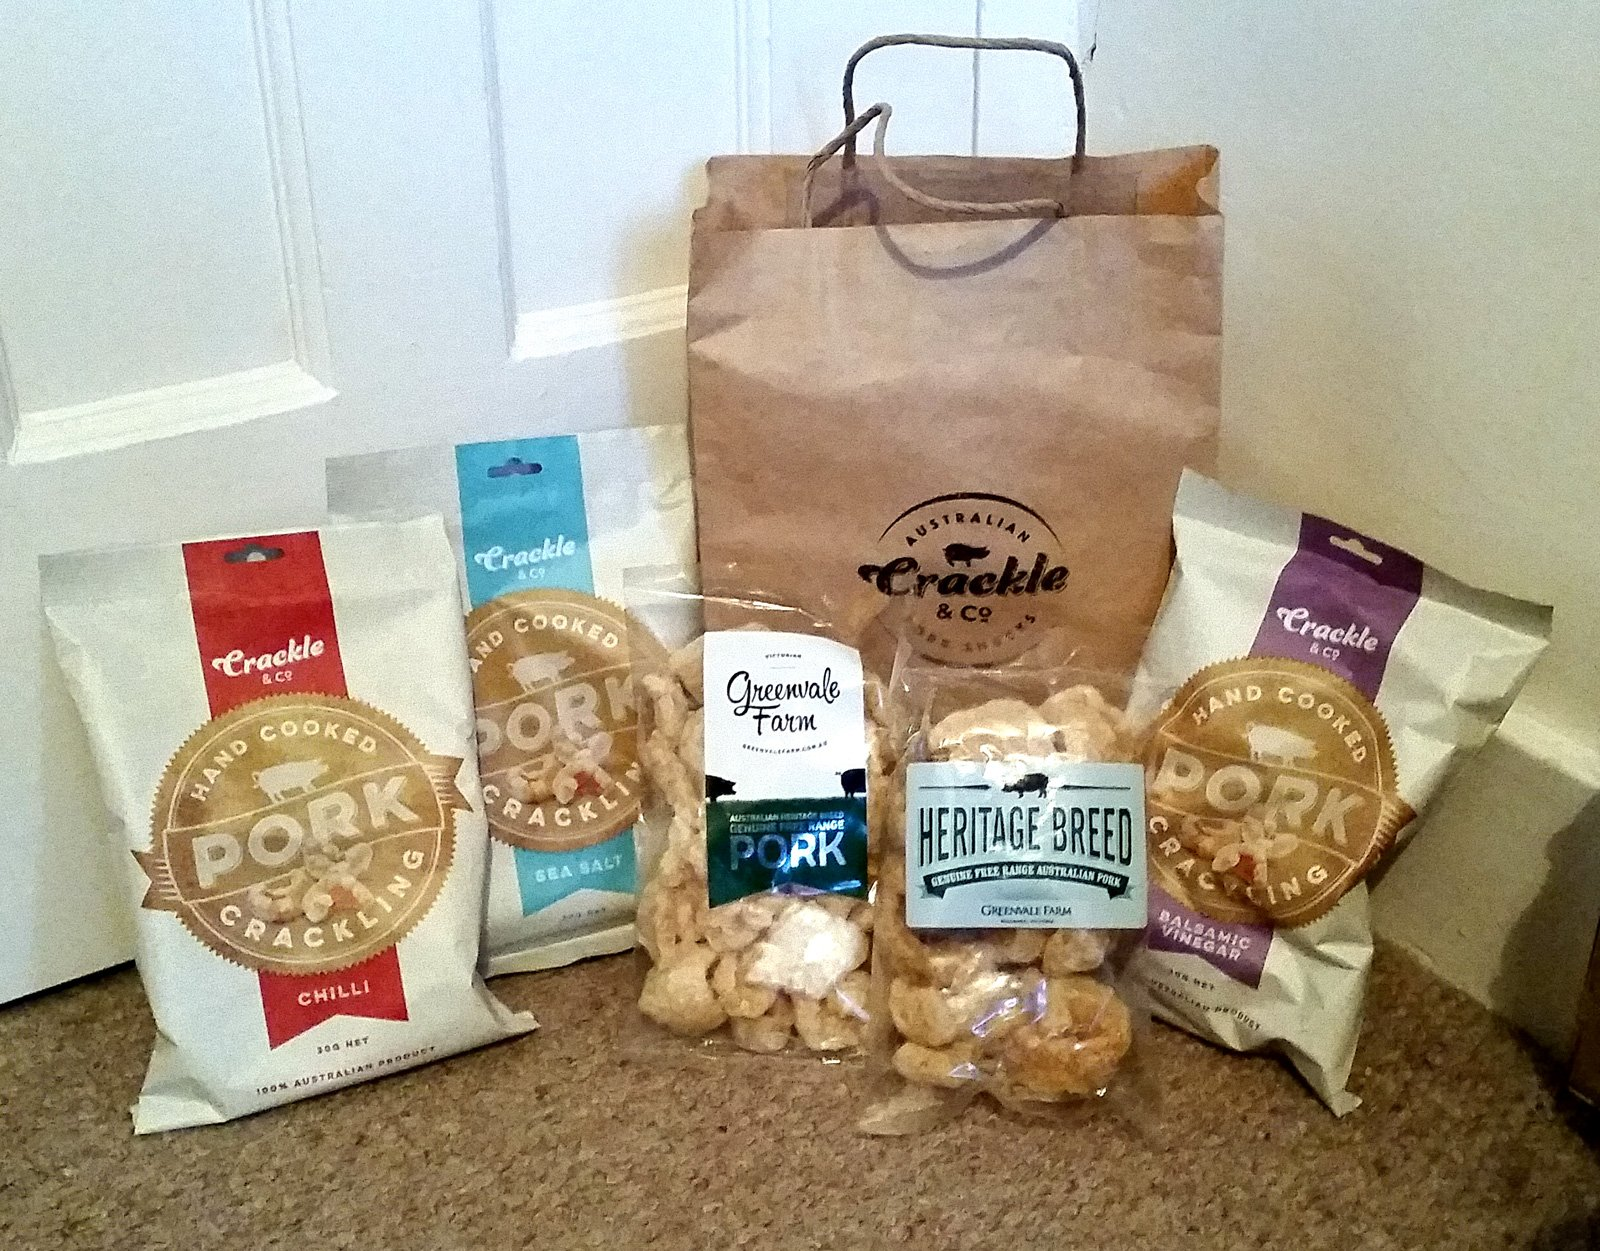 20151211 152046 1 - Greenvale Farm / Crackle & Co Delivery